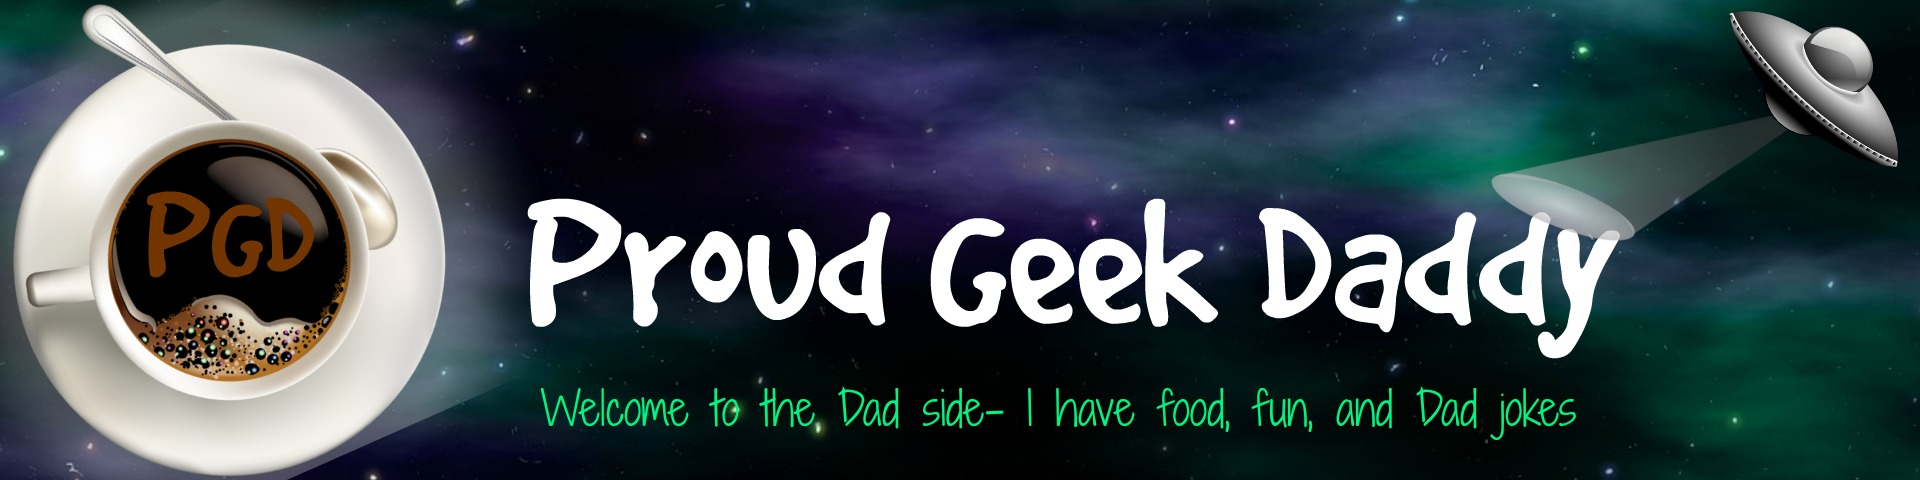 Proud Geek Daddy